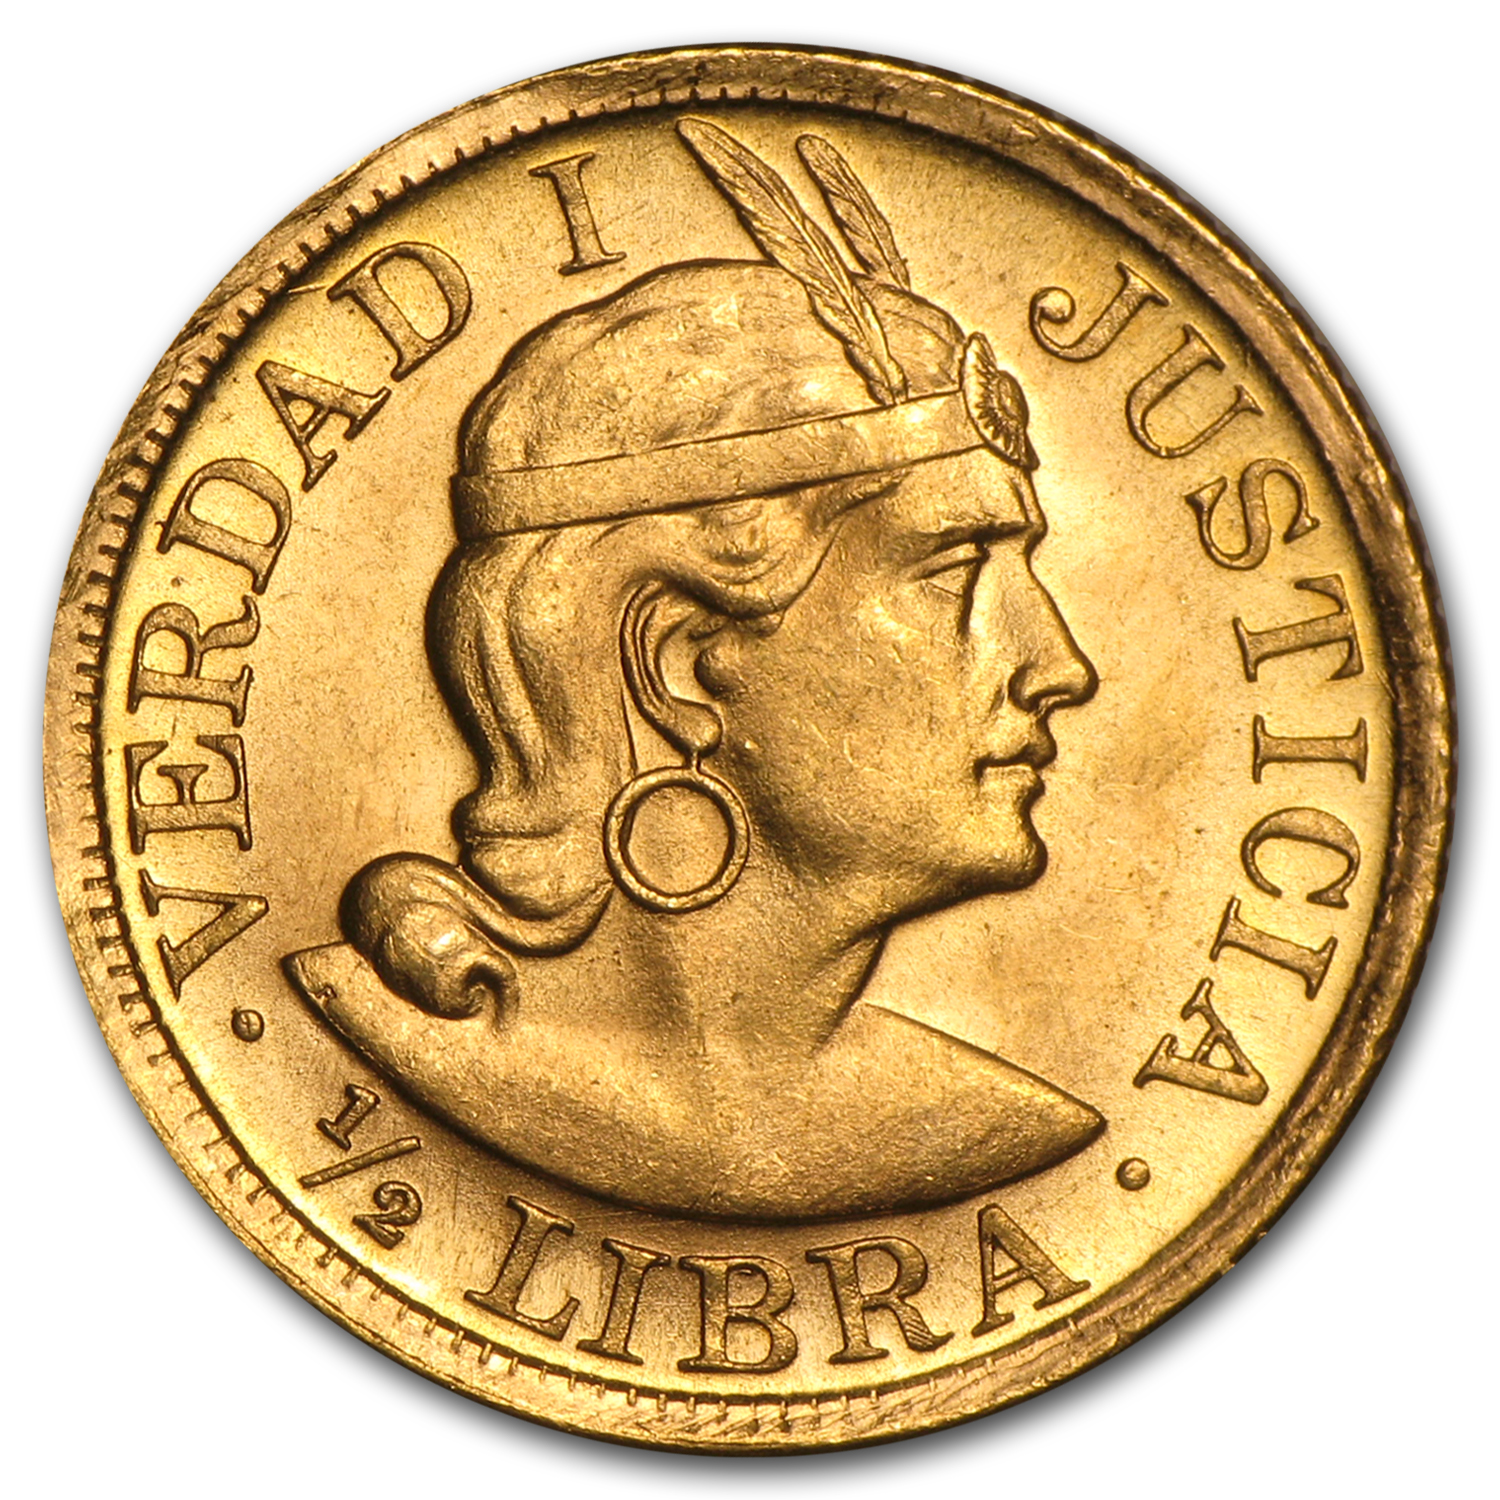 Peru Gold 1/2 Libra AU or Better (AGW 0.1177, Random)